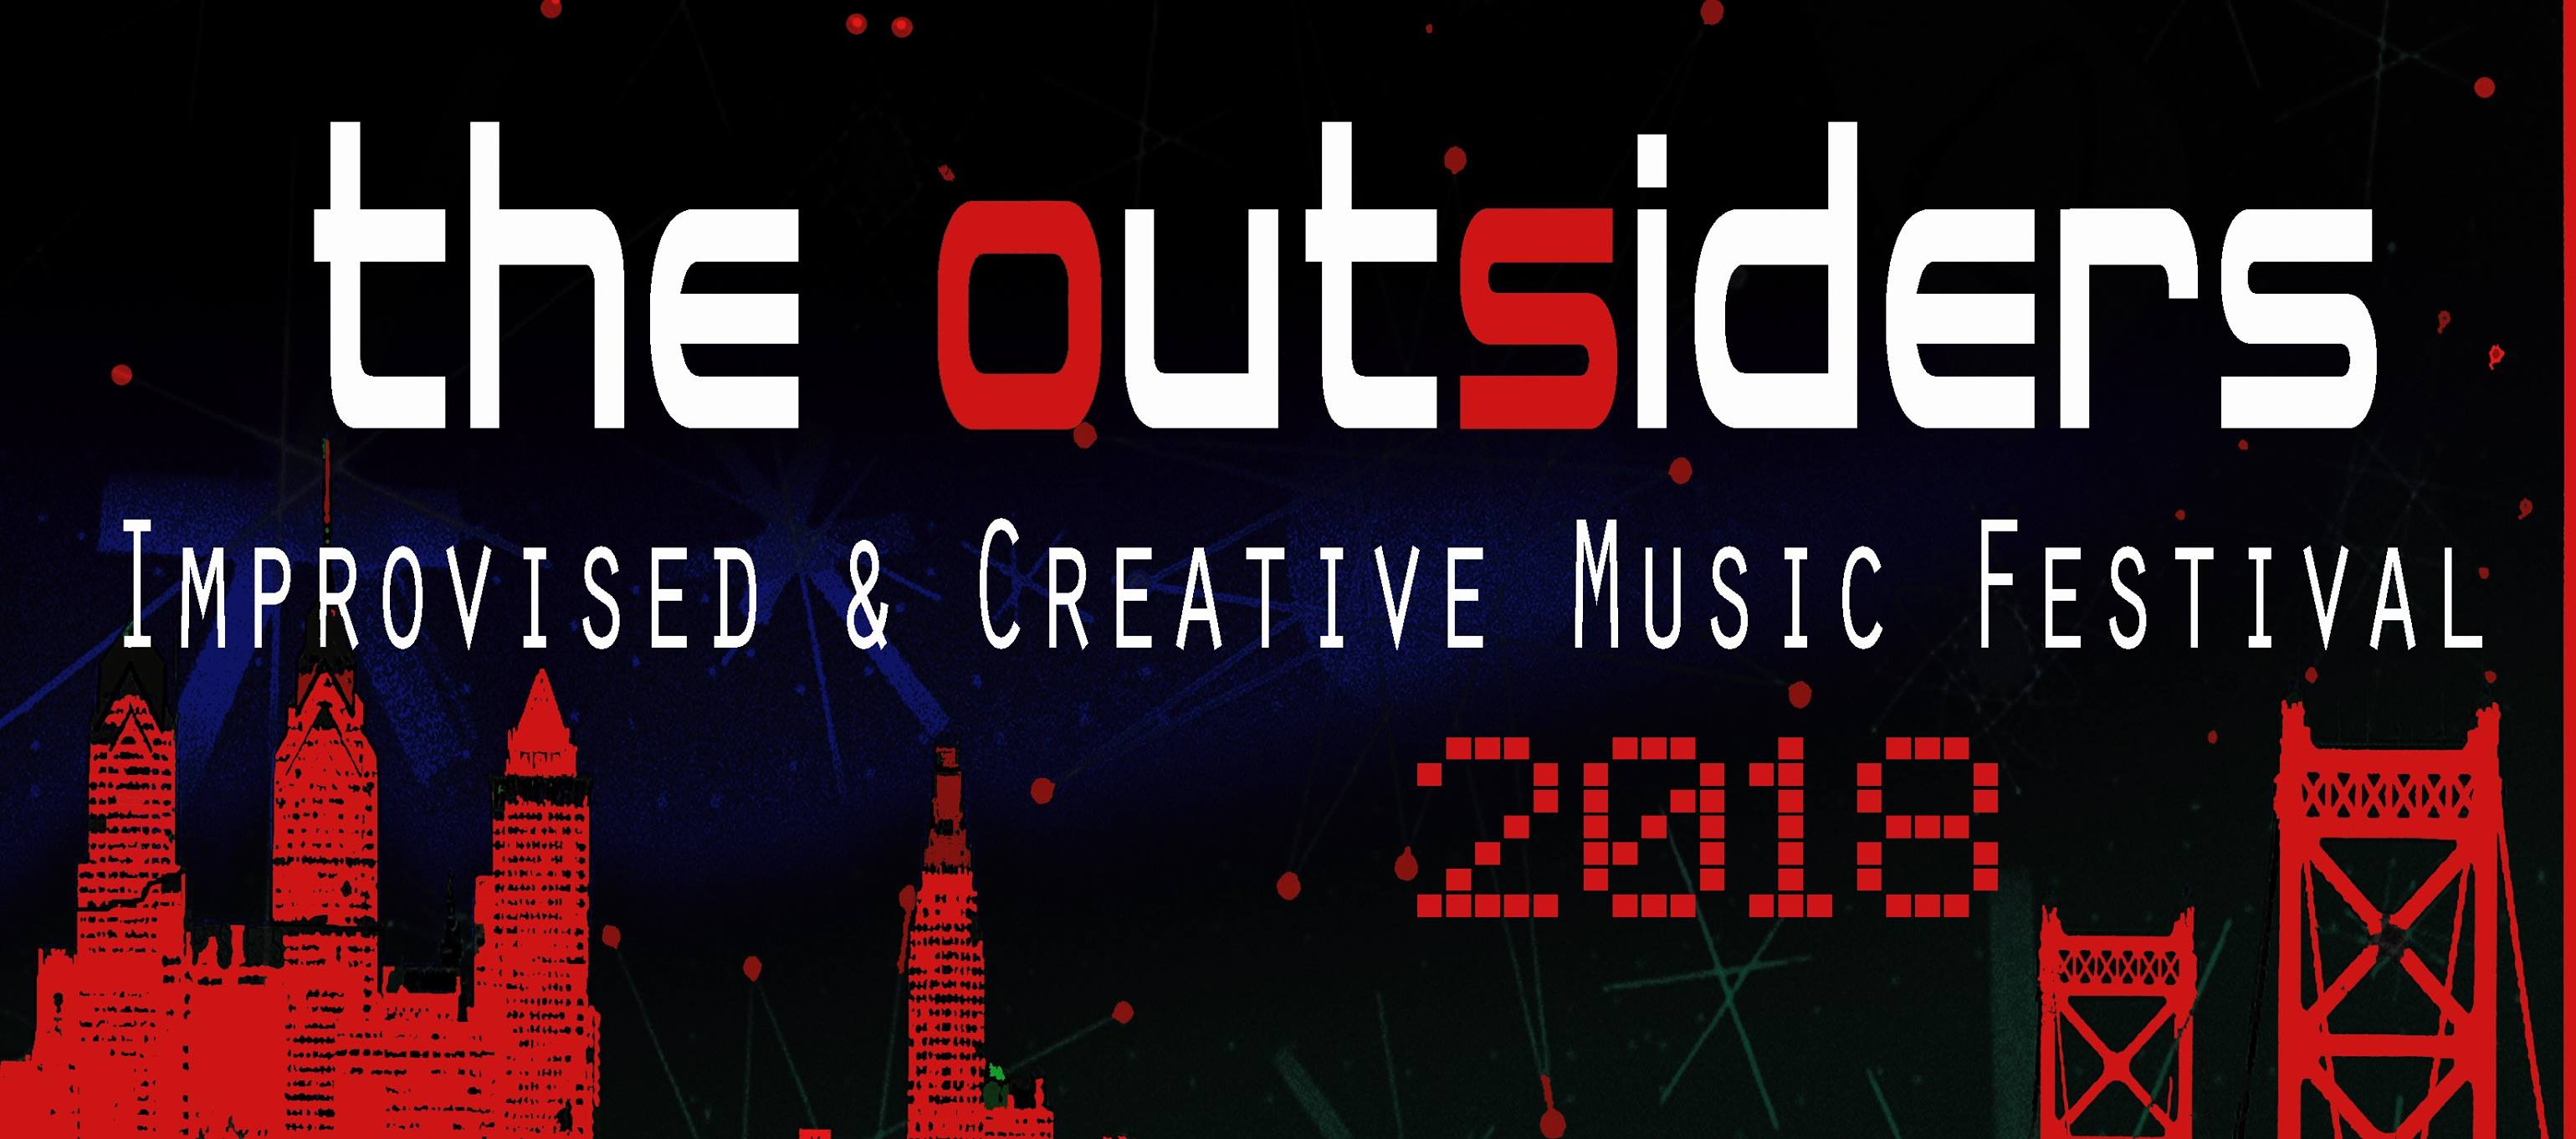 2018 Outsiders Improvised & Creative Music Festival Kickoff with